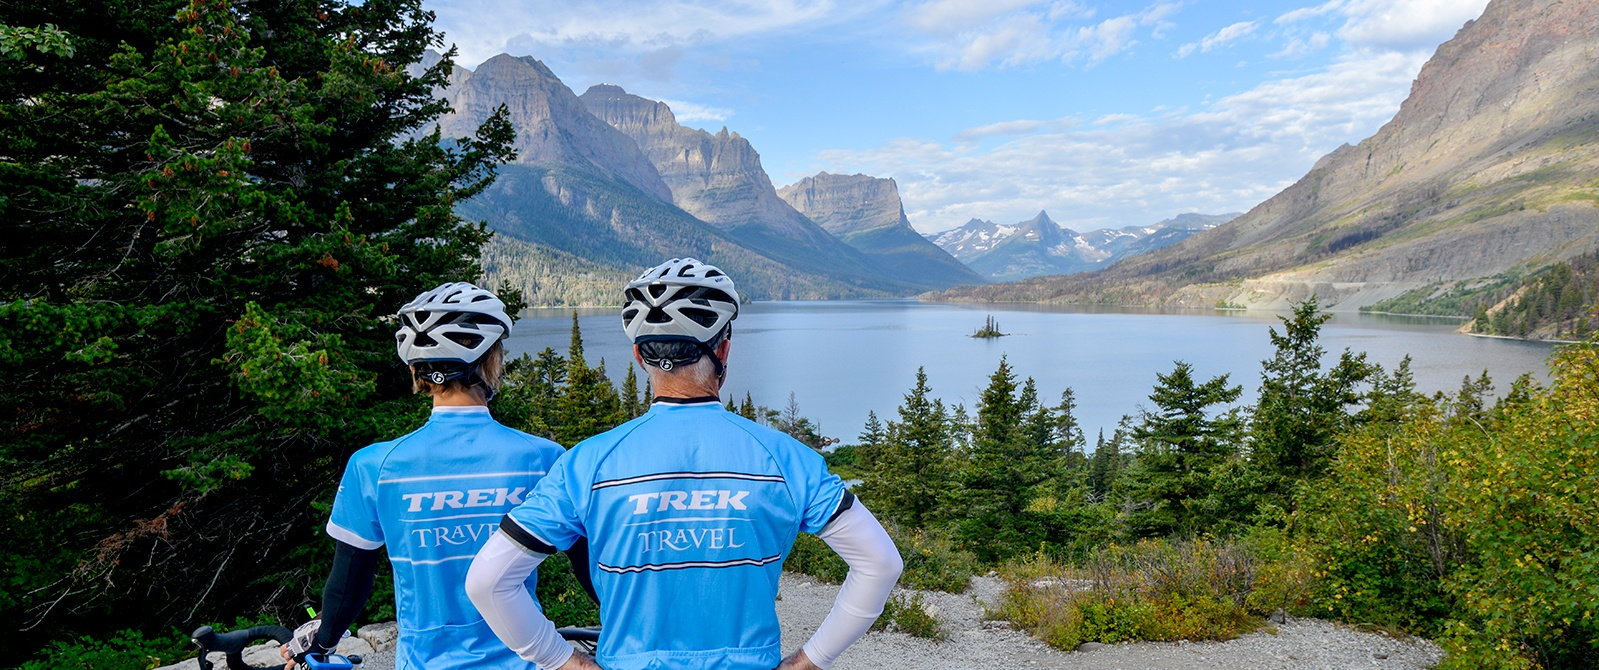 Trek Travel Glacier National Park Cycling Vacation in Montana